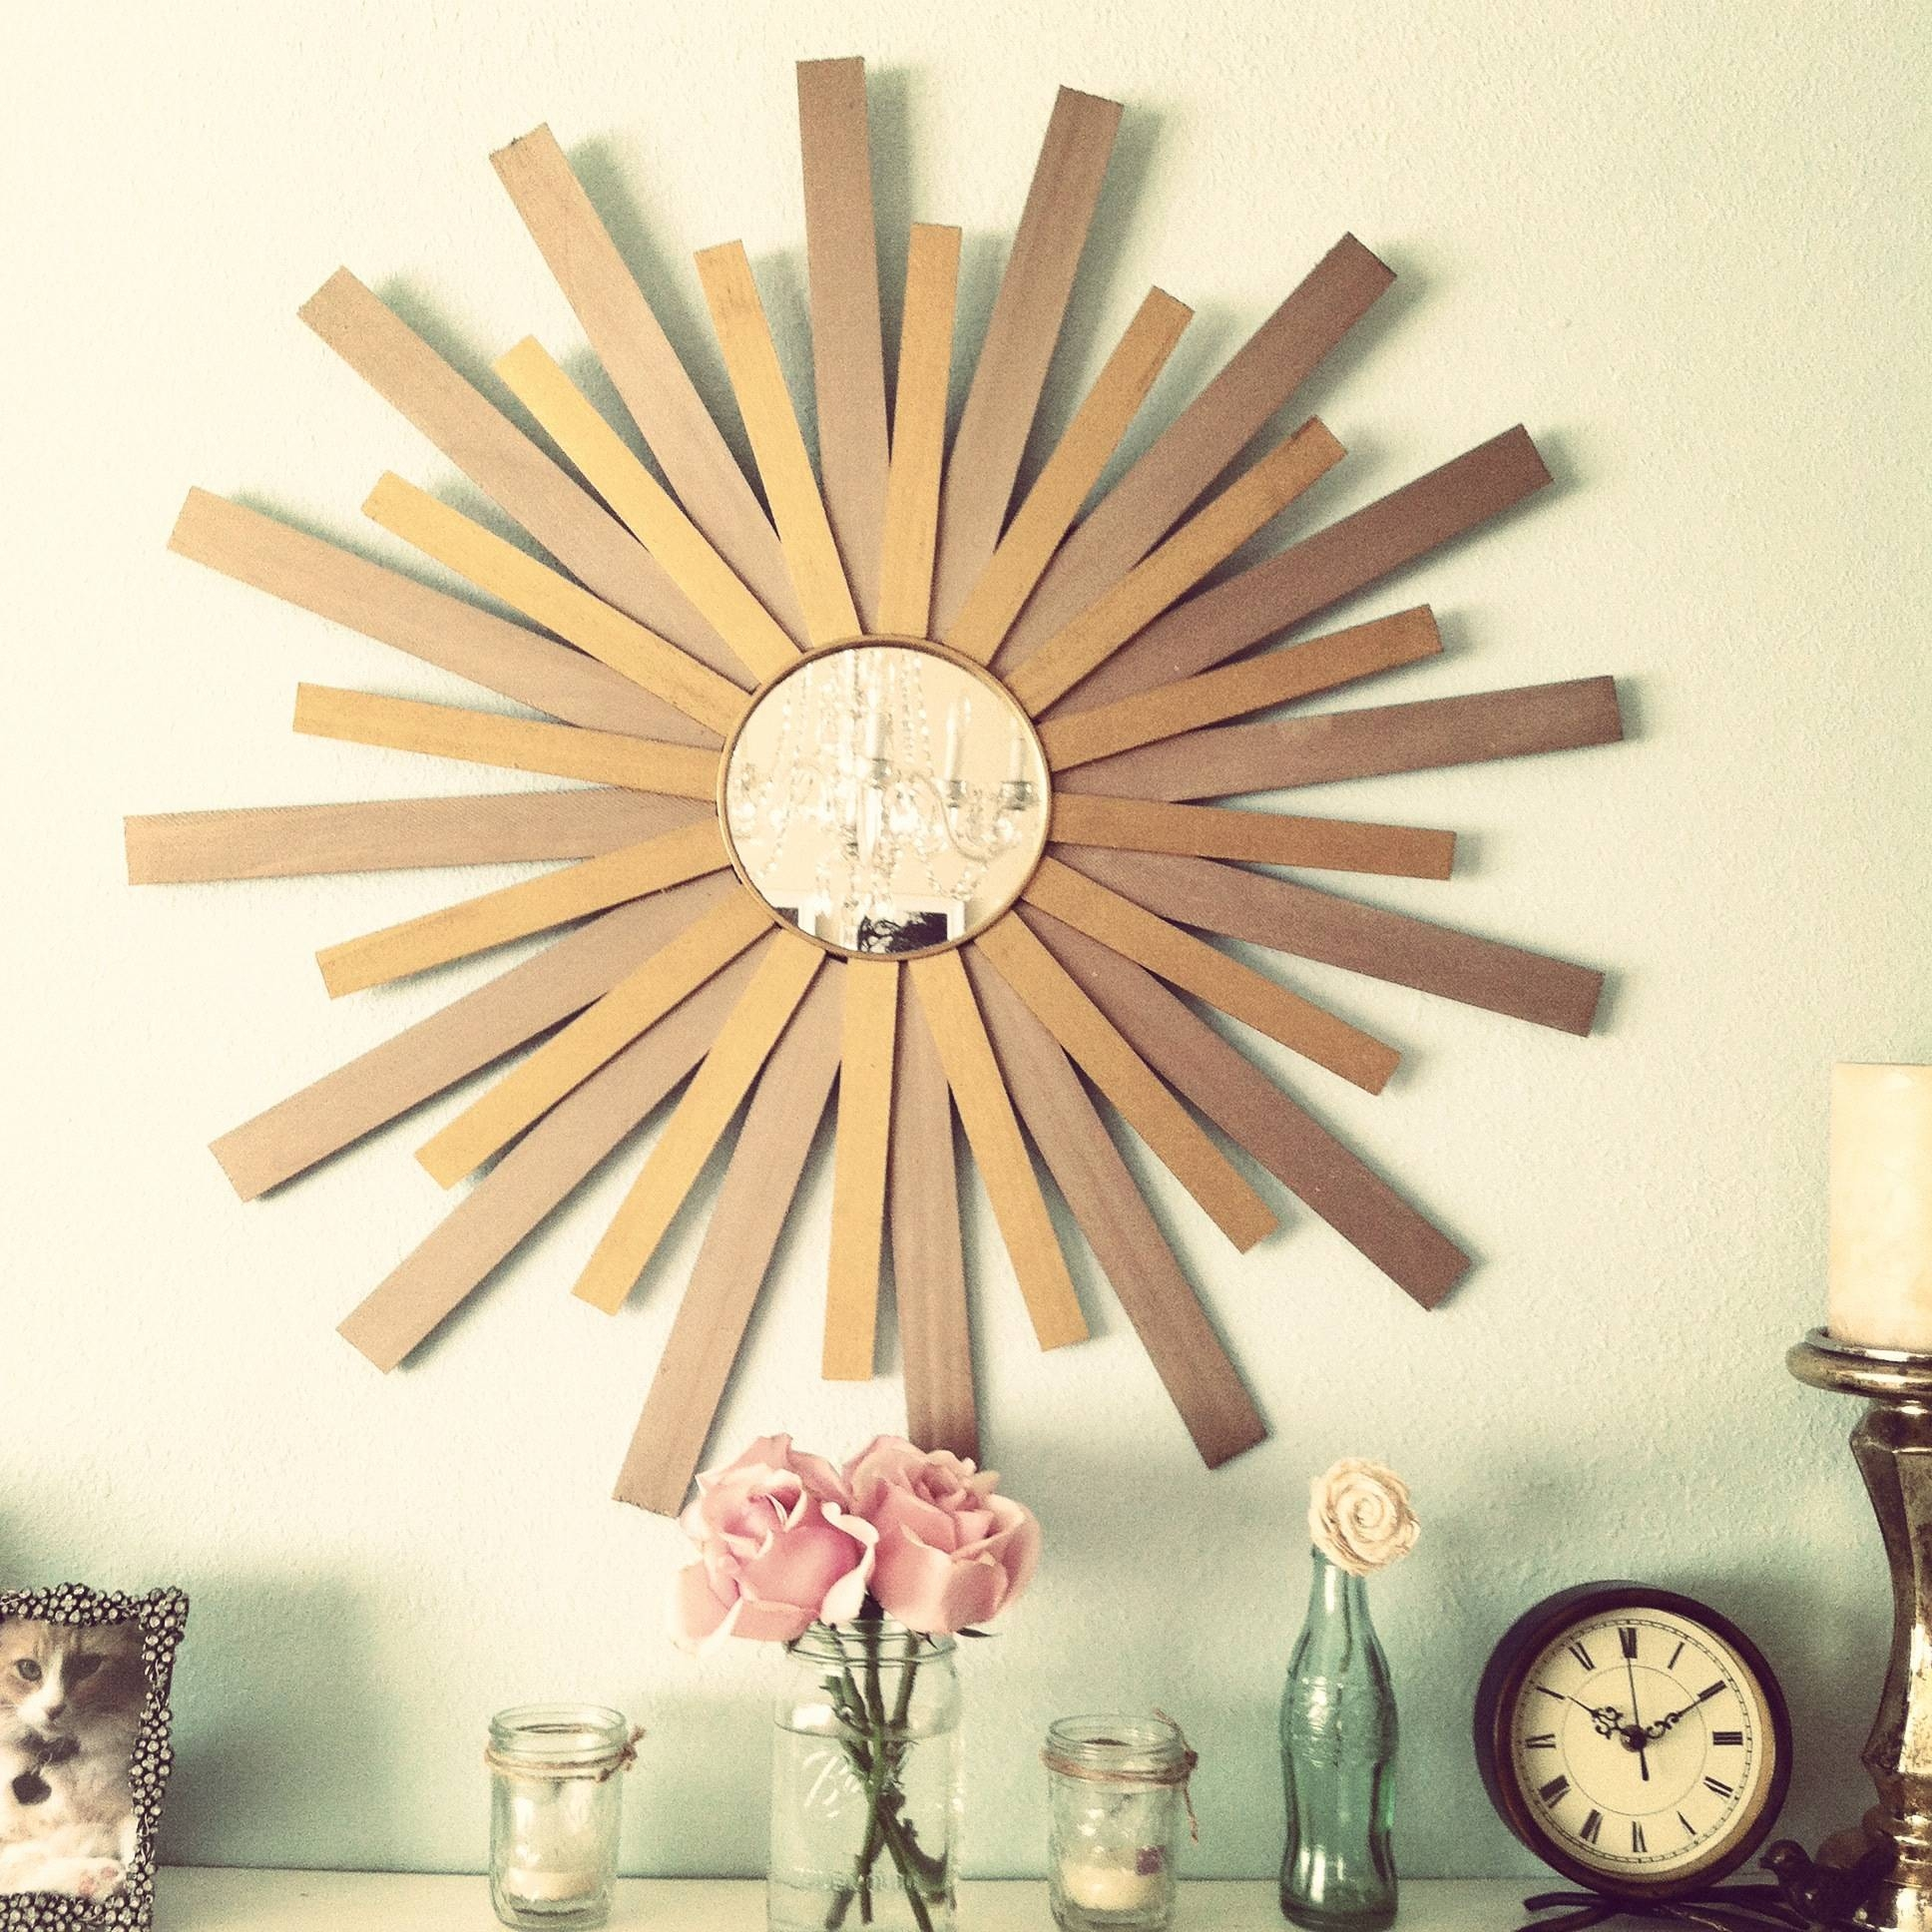 Decorating: Pretty Gold Sunburst Mirror For Wall Accessories Ideas with regard to Bronze Starburst Mirrors (Image 8 of 25)